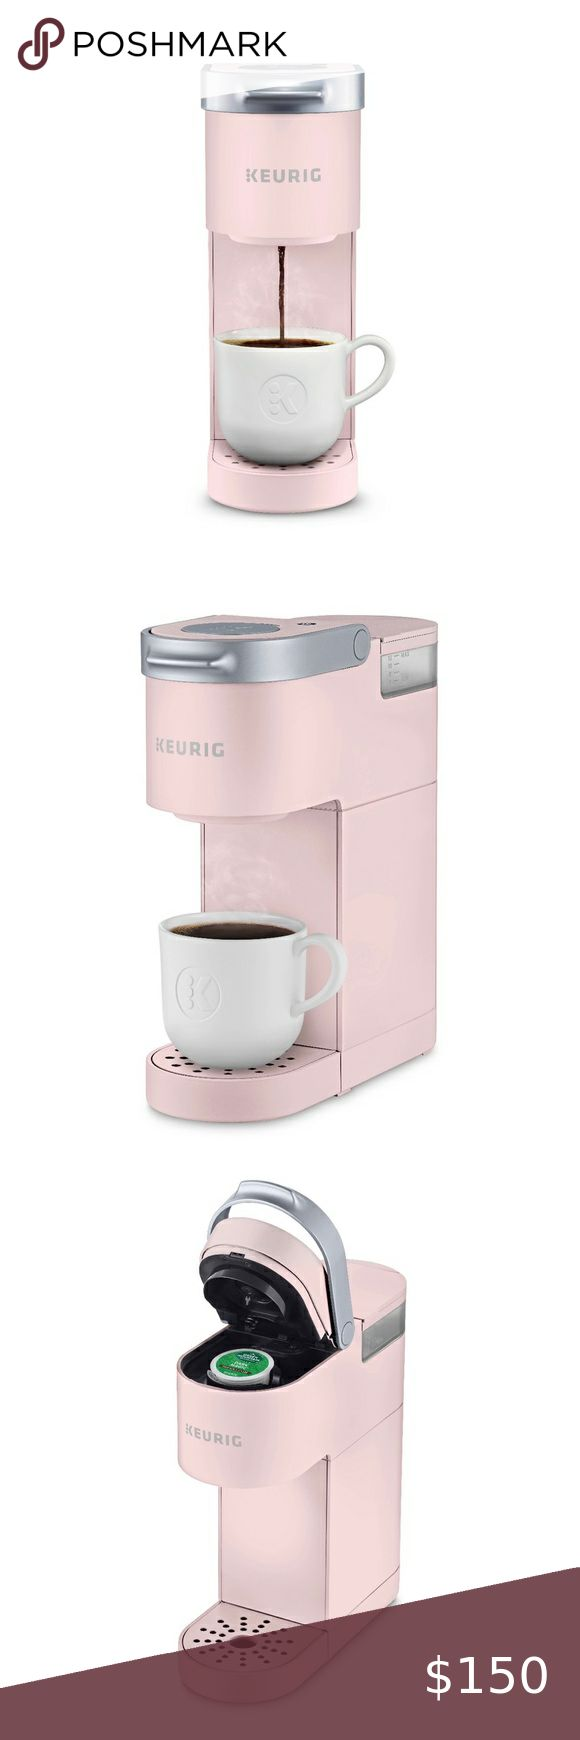 *Limited Edition* Color - Dusty Rose Mini Keurig Hard to find limited edition Dusty Rose Pink ...